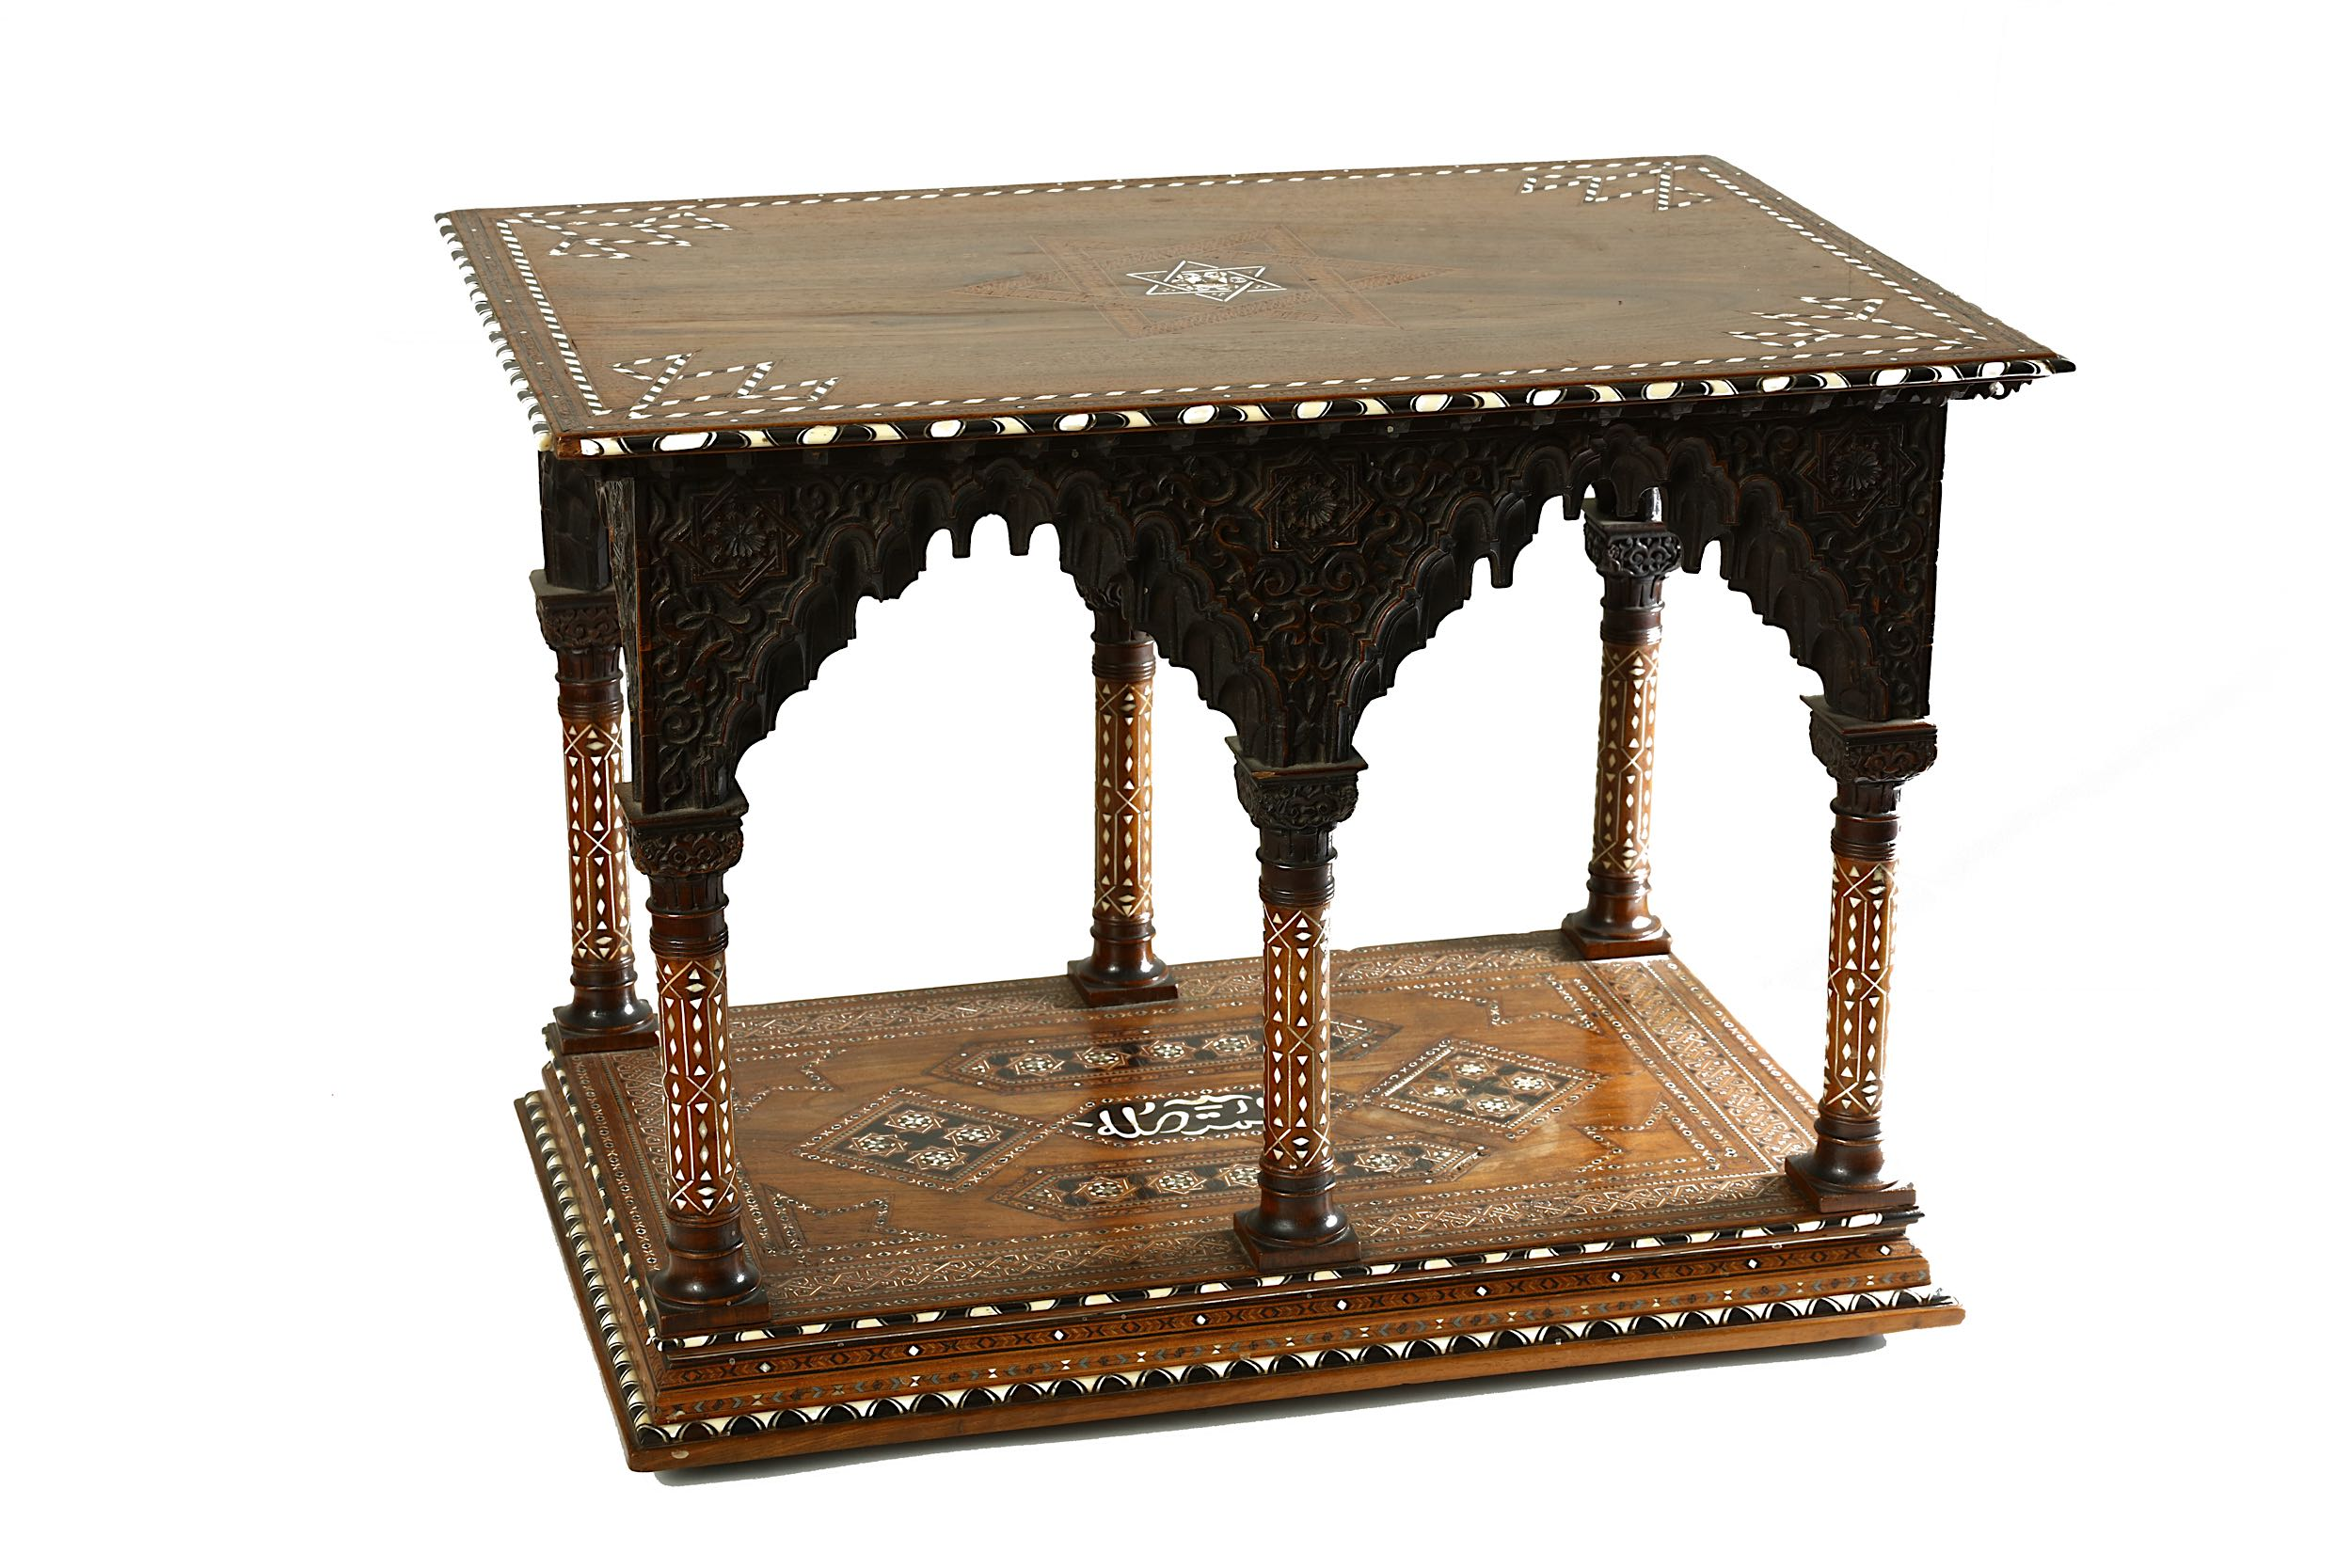 Lot 41 - AN HISPANO-MORESQUE BONE AND HARDWOOD-INLAID VARGUENO WITH SUPPORTING DESK.